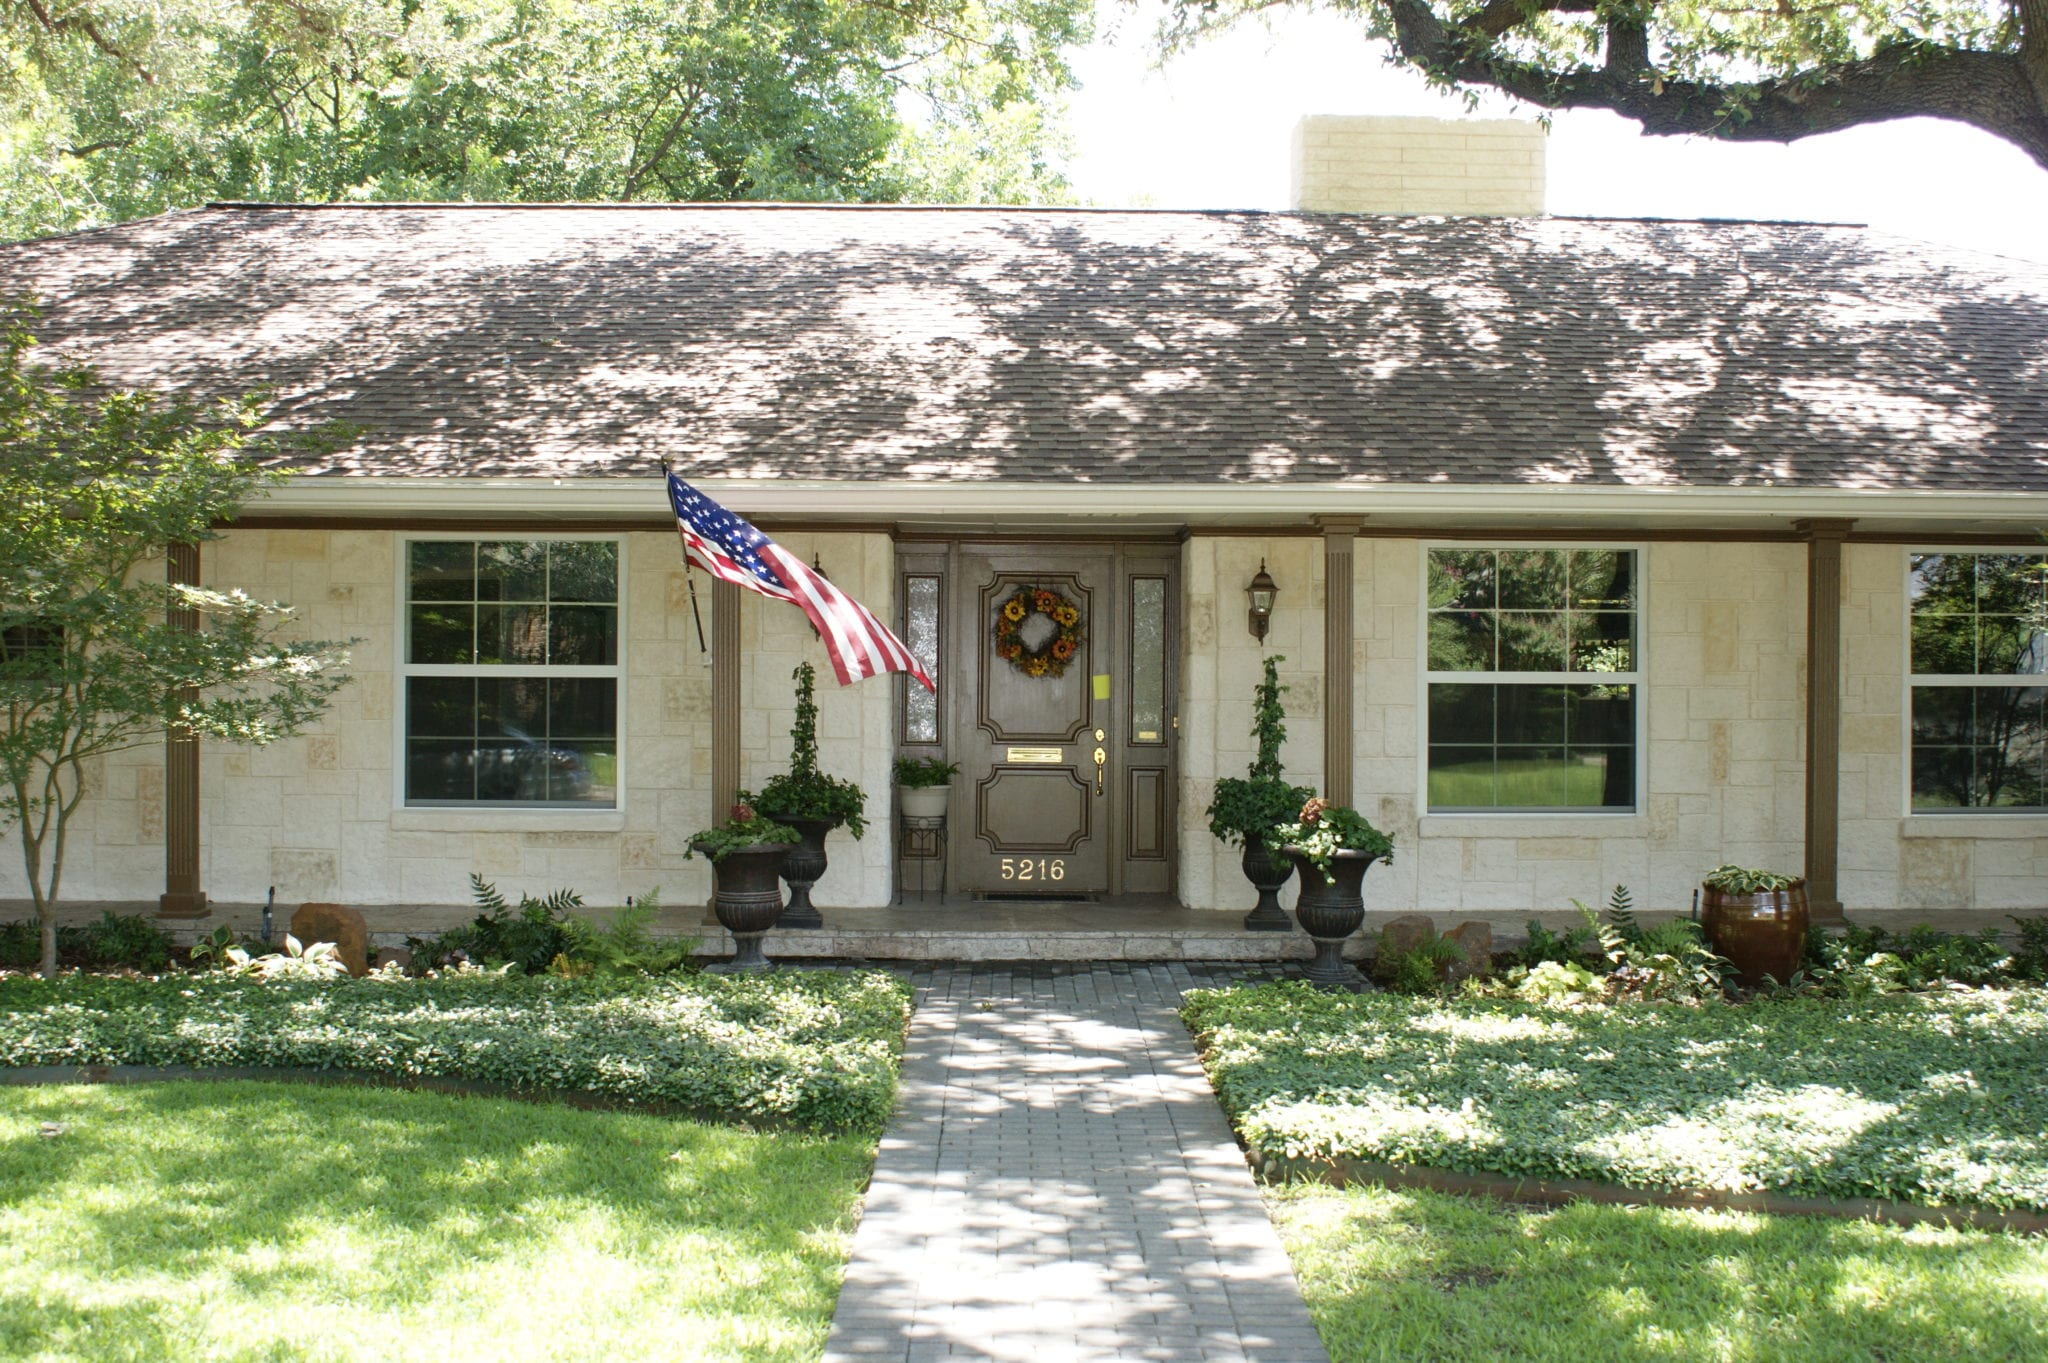 ranch style home, white limestone with american flag